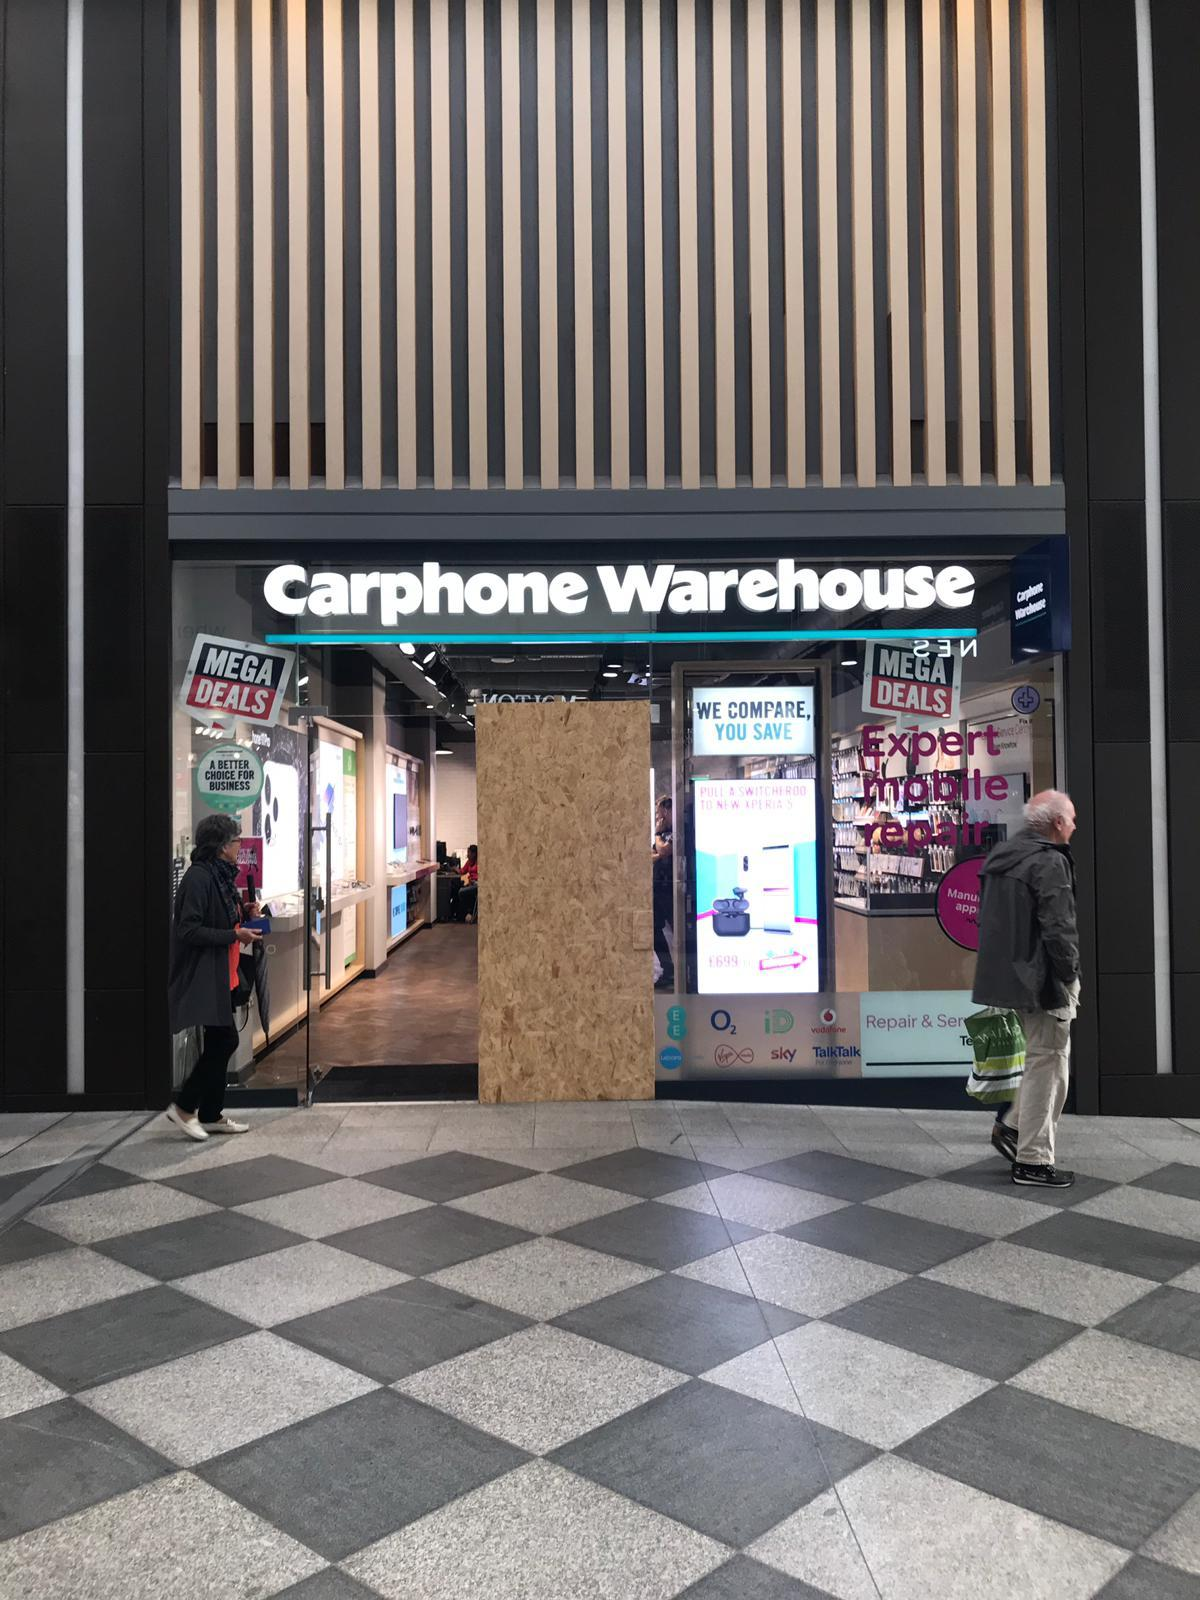 Iphone Raid At Carphone Warehouse Westgate Oxford Teens Released Oxford Mail